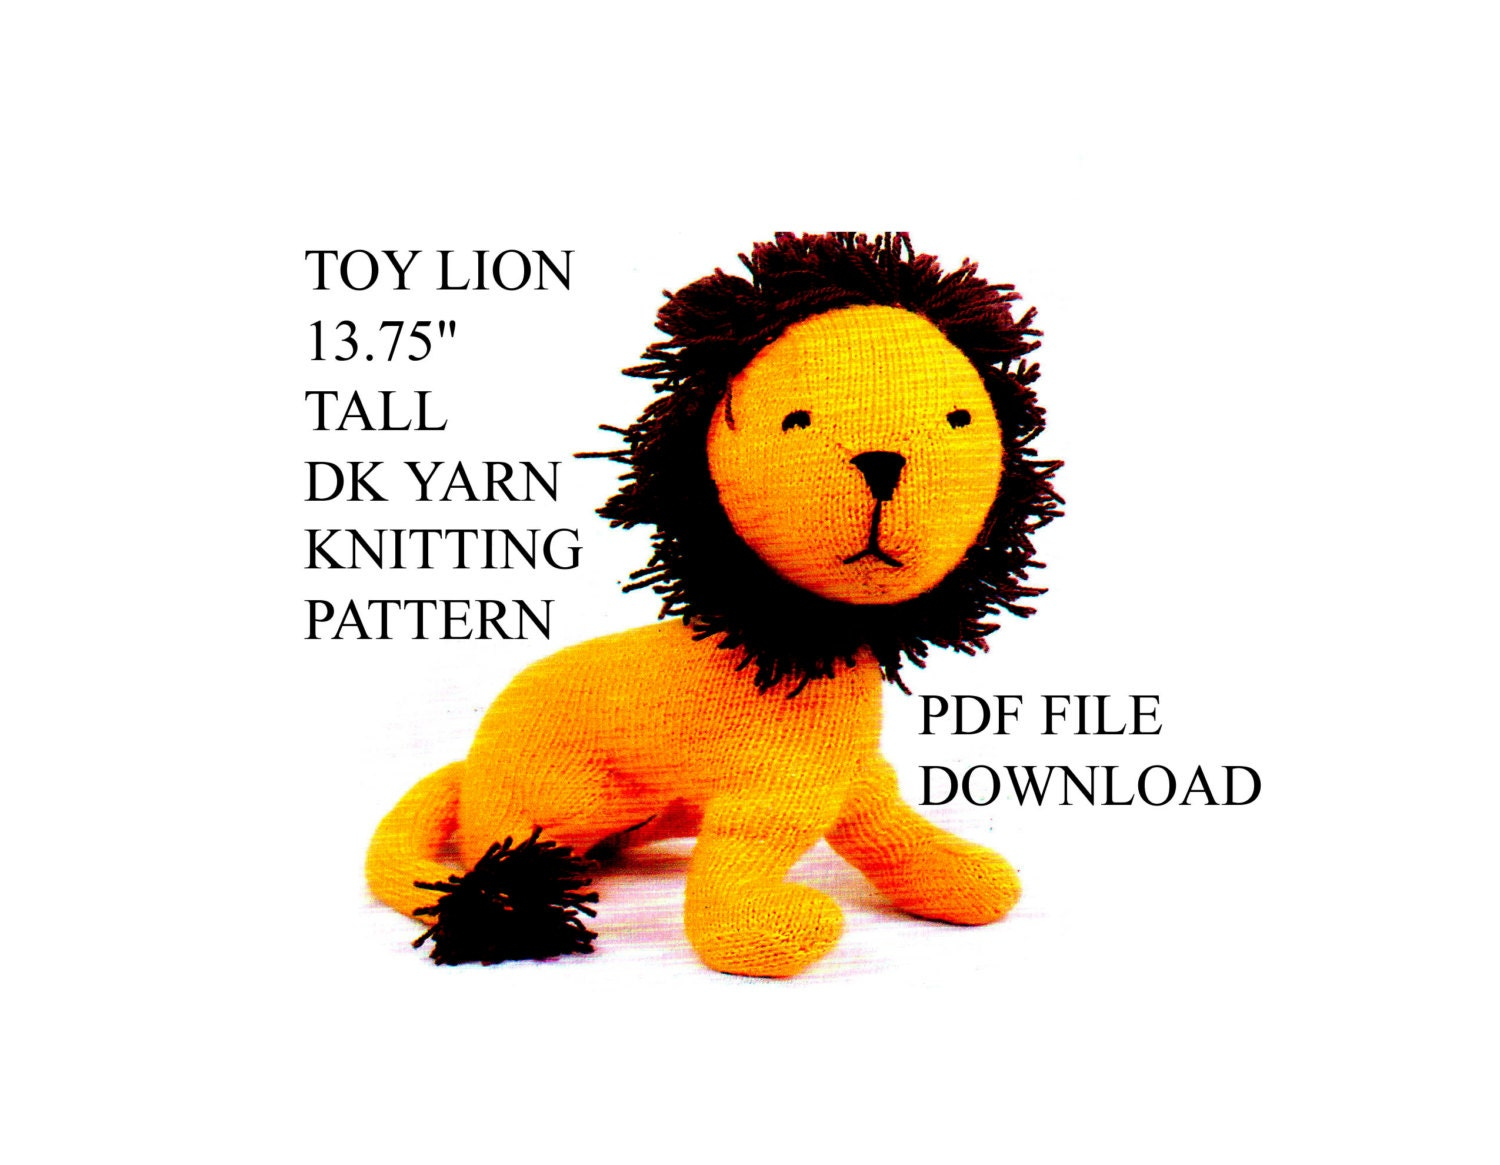 1375 Tall Leo The Lion Toy Knitting Pattern Pdfle Etsy